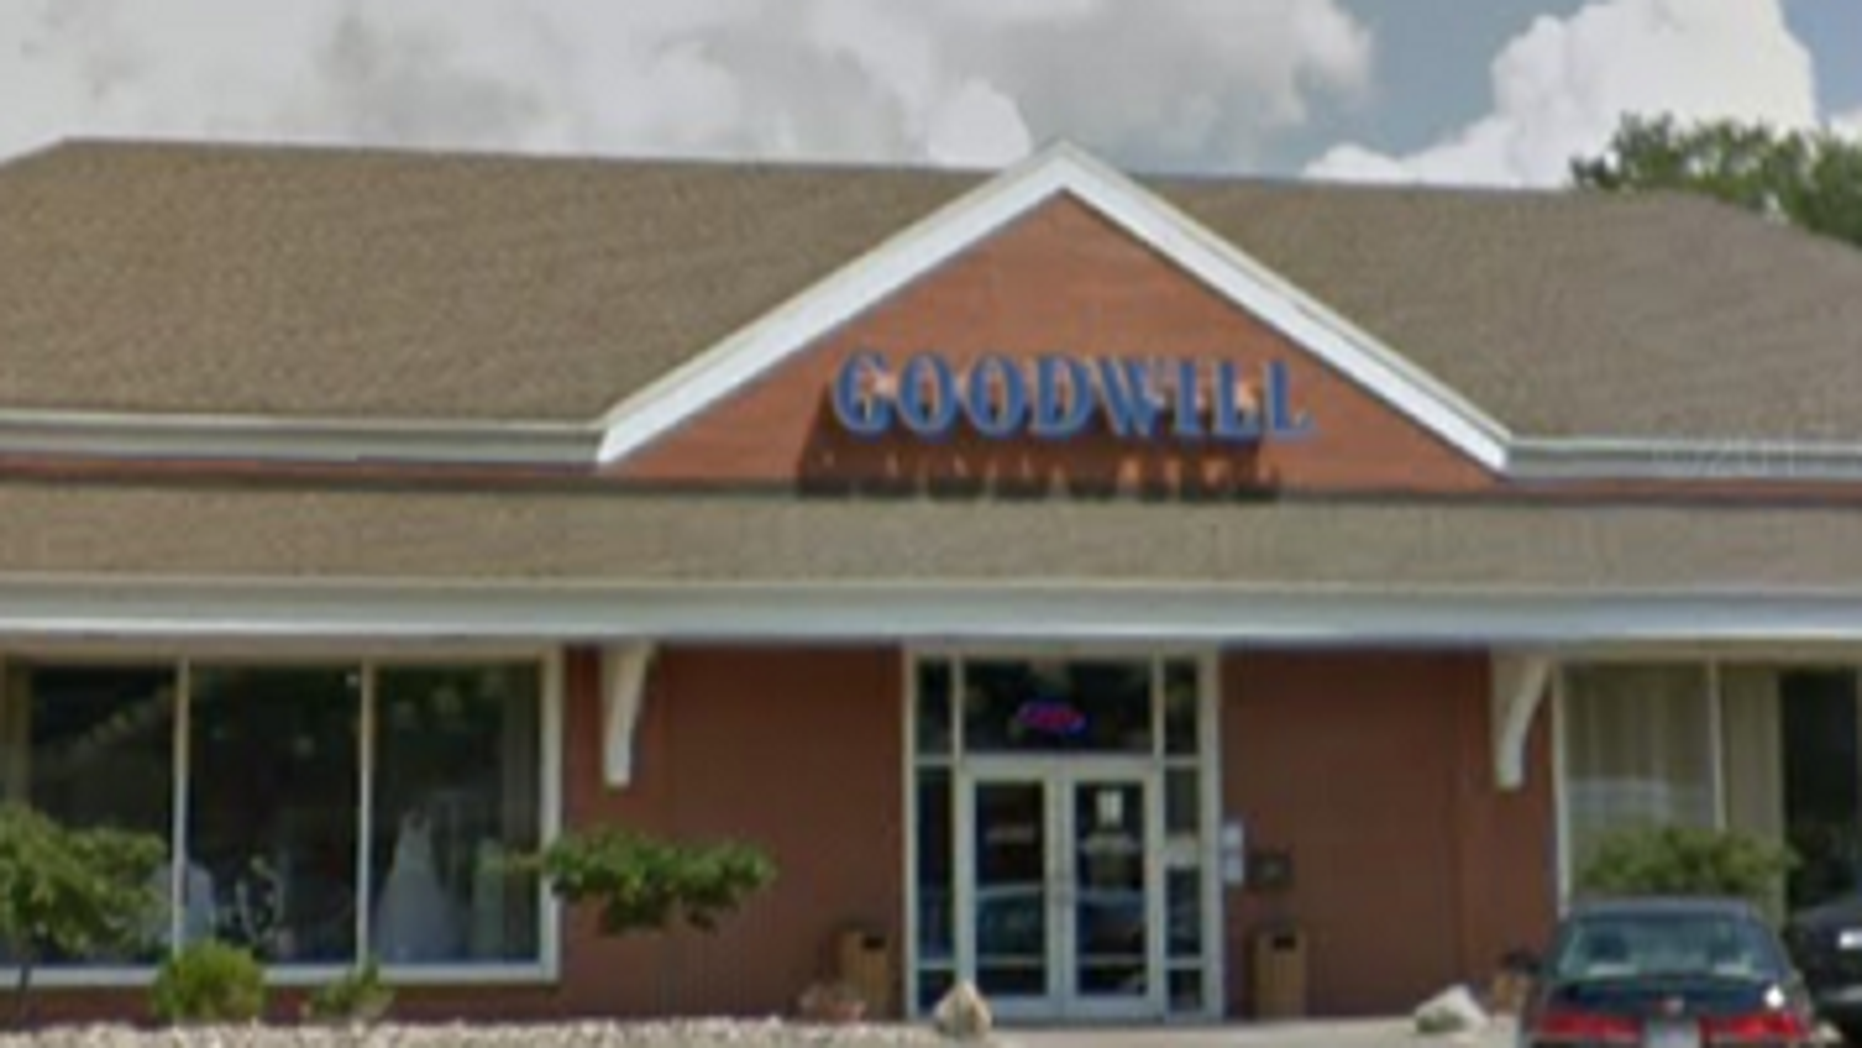 A Goodwill store in Zanesville, Ohio, said it has returned nearly $100G to a couple who accidentally donated it last week.